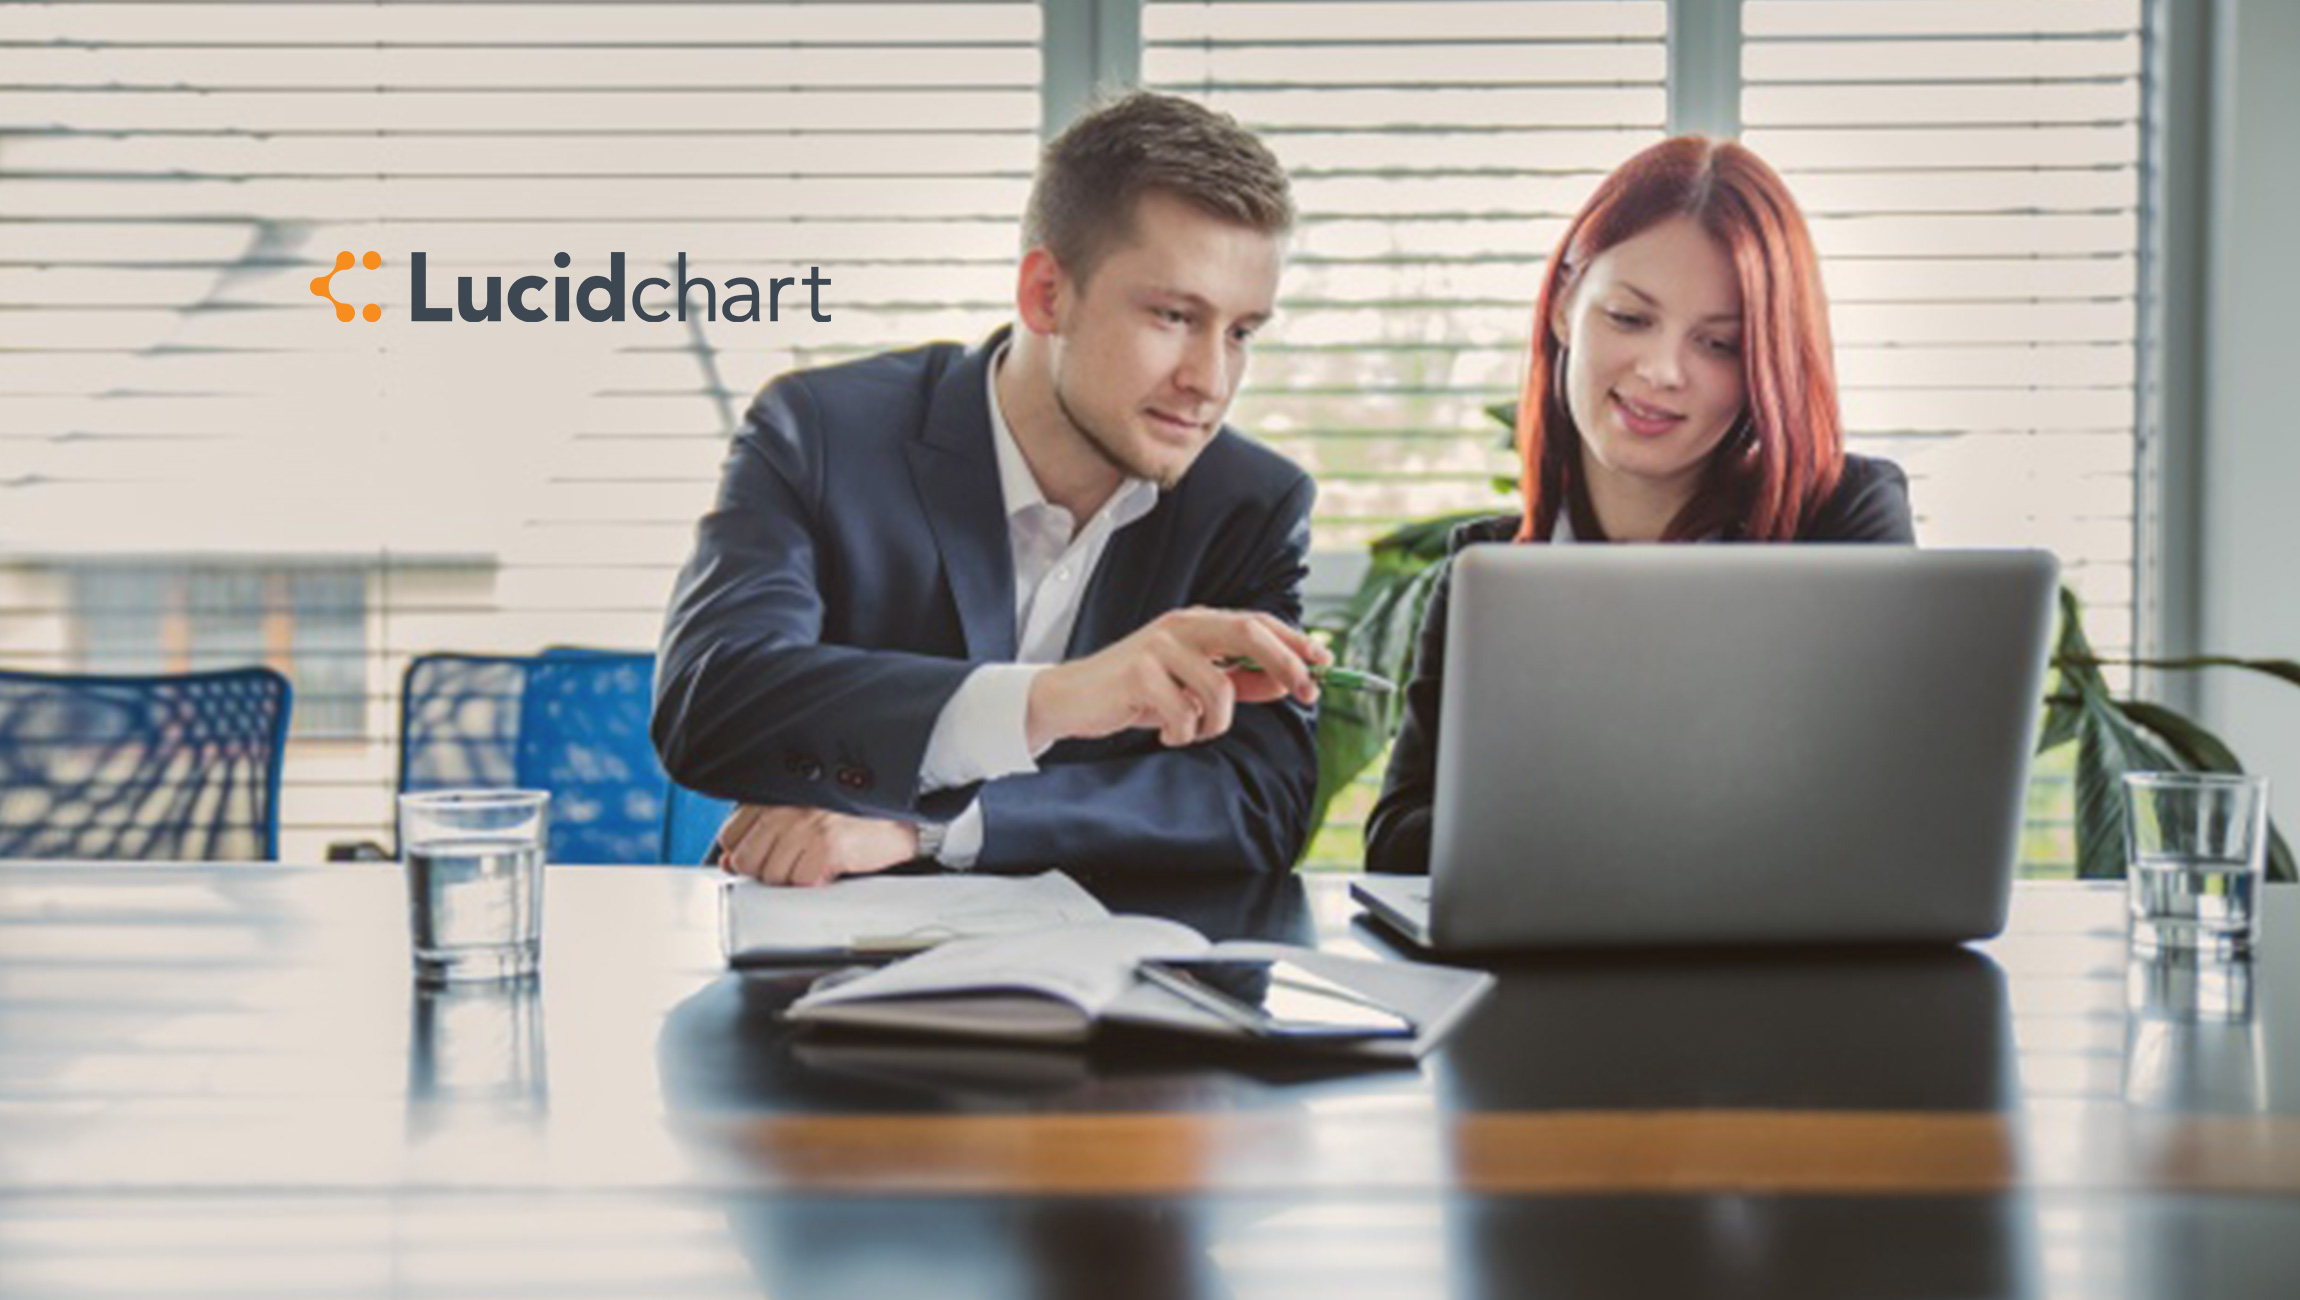 Lucidchart Announces New Integration with GitHub to Increase Understanding Among Teams